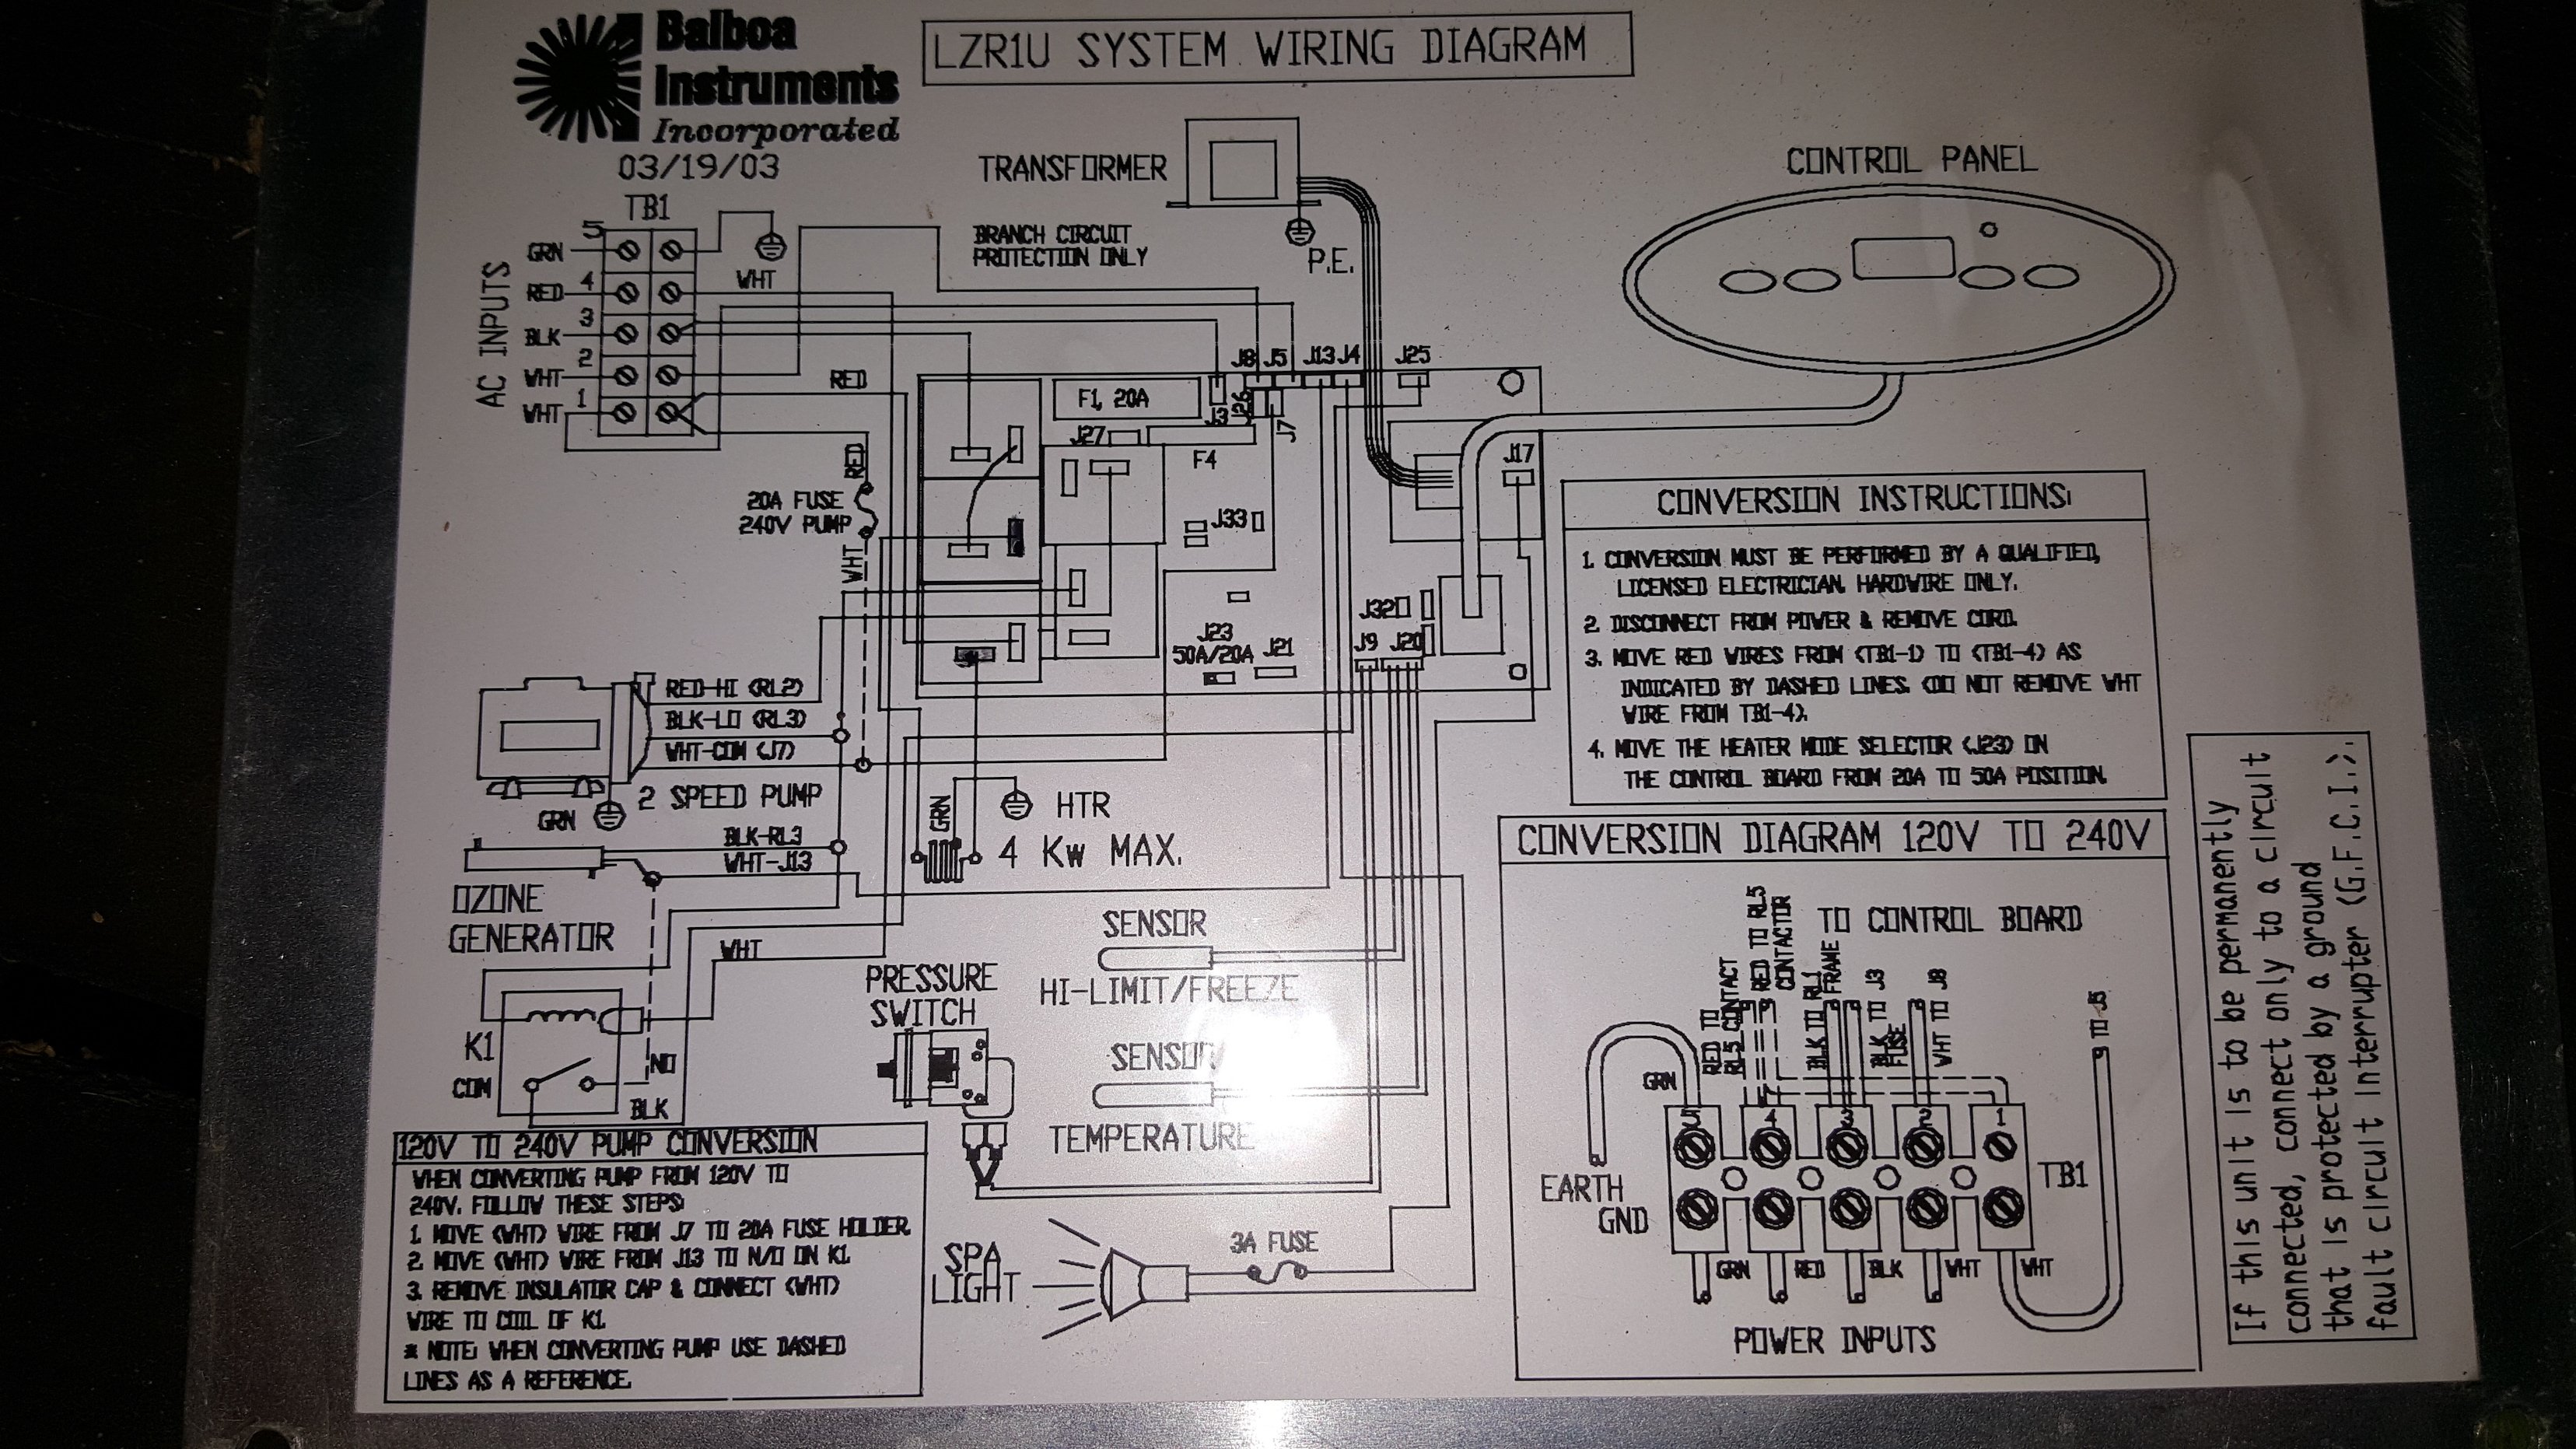 Marquis Spa Wiring Diagram | Wiring Diagram on jacuzzi motor diagrams, jacuzzi enclosures, jacuzzi parts diagram, jacuzzi pressure switch wiring, jacuzzi bathtubs, jacuzzi jets diagram, jacuzzi party bus, jacuzzi electrical diagrams, spa electrical circuit diagrams, jacuzzi plumbing diagram, jacuzzi tub diagram, jacuzzi spa pumps,